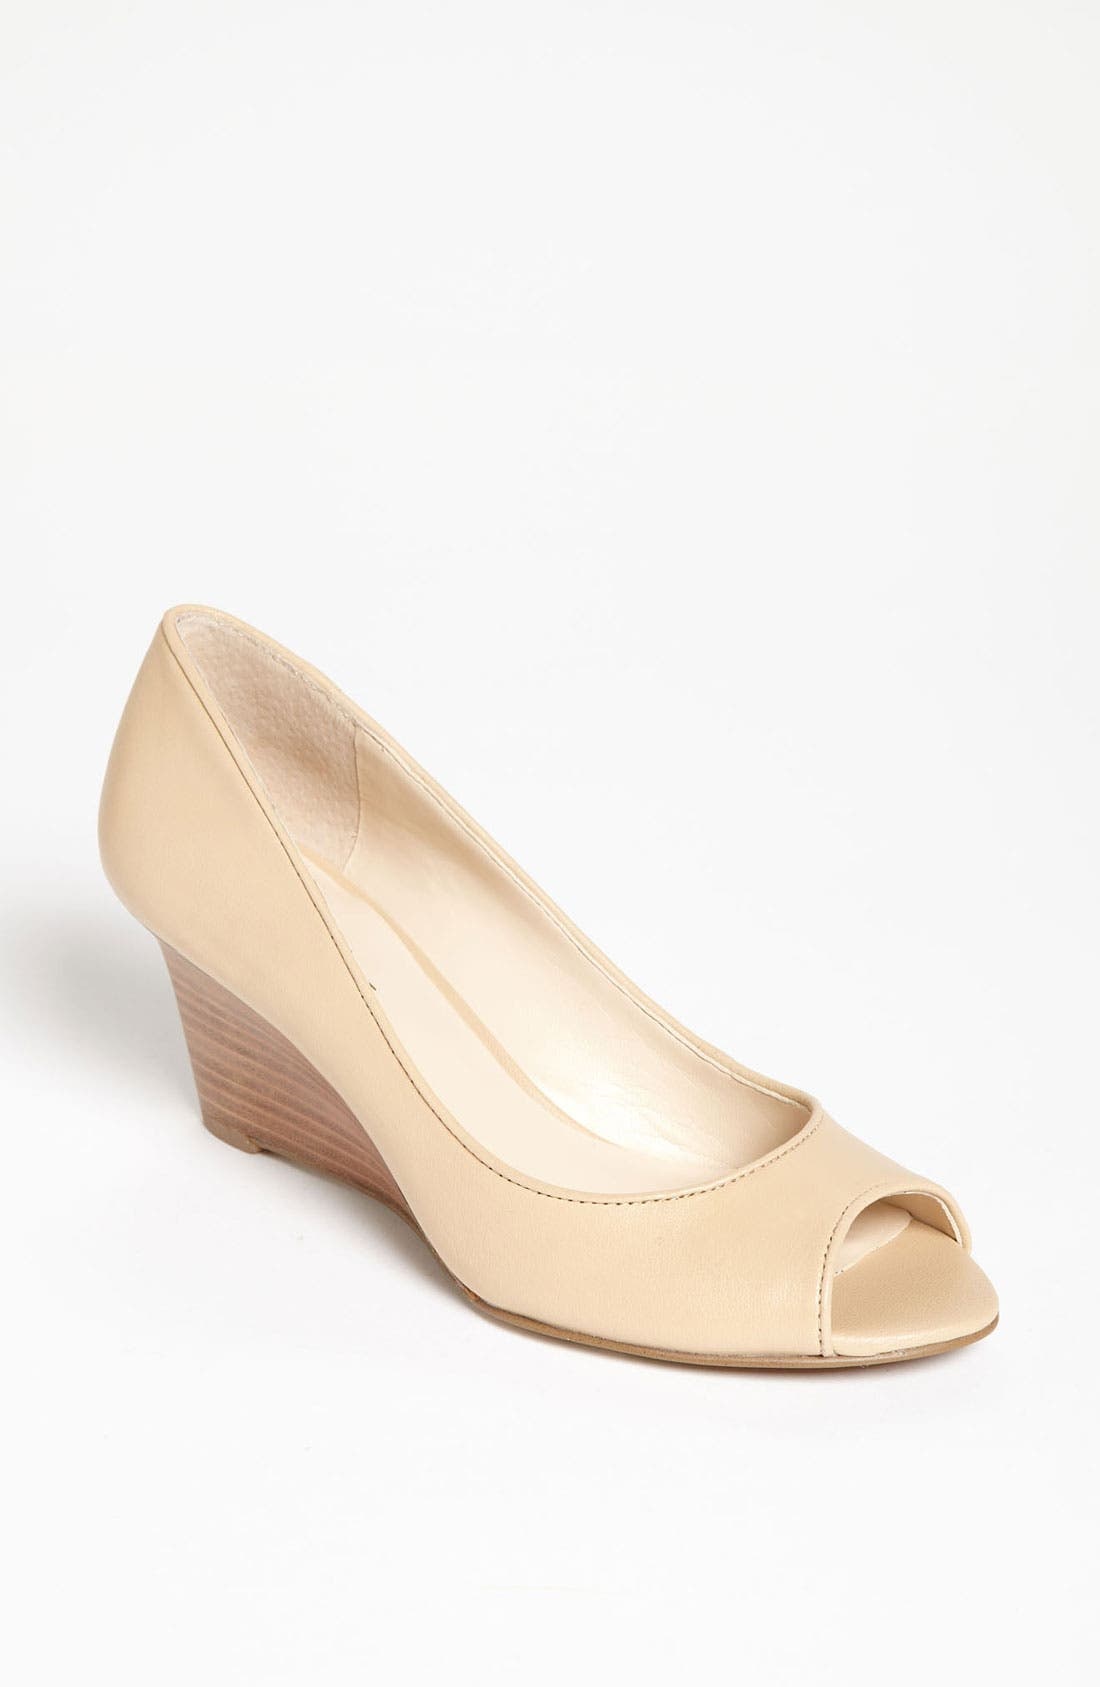 Main Image - Nine West 'Relaxxin' Pump